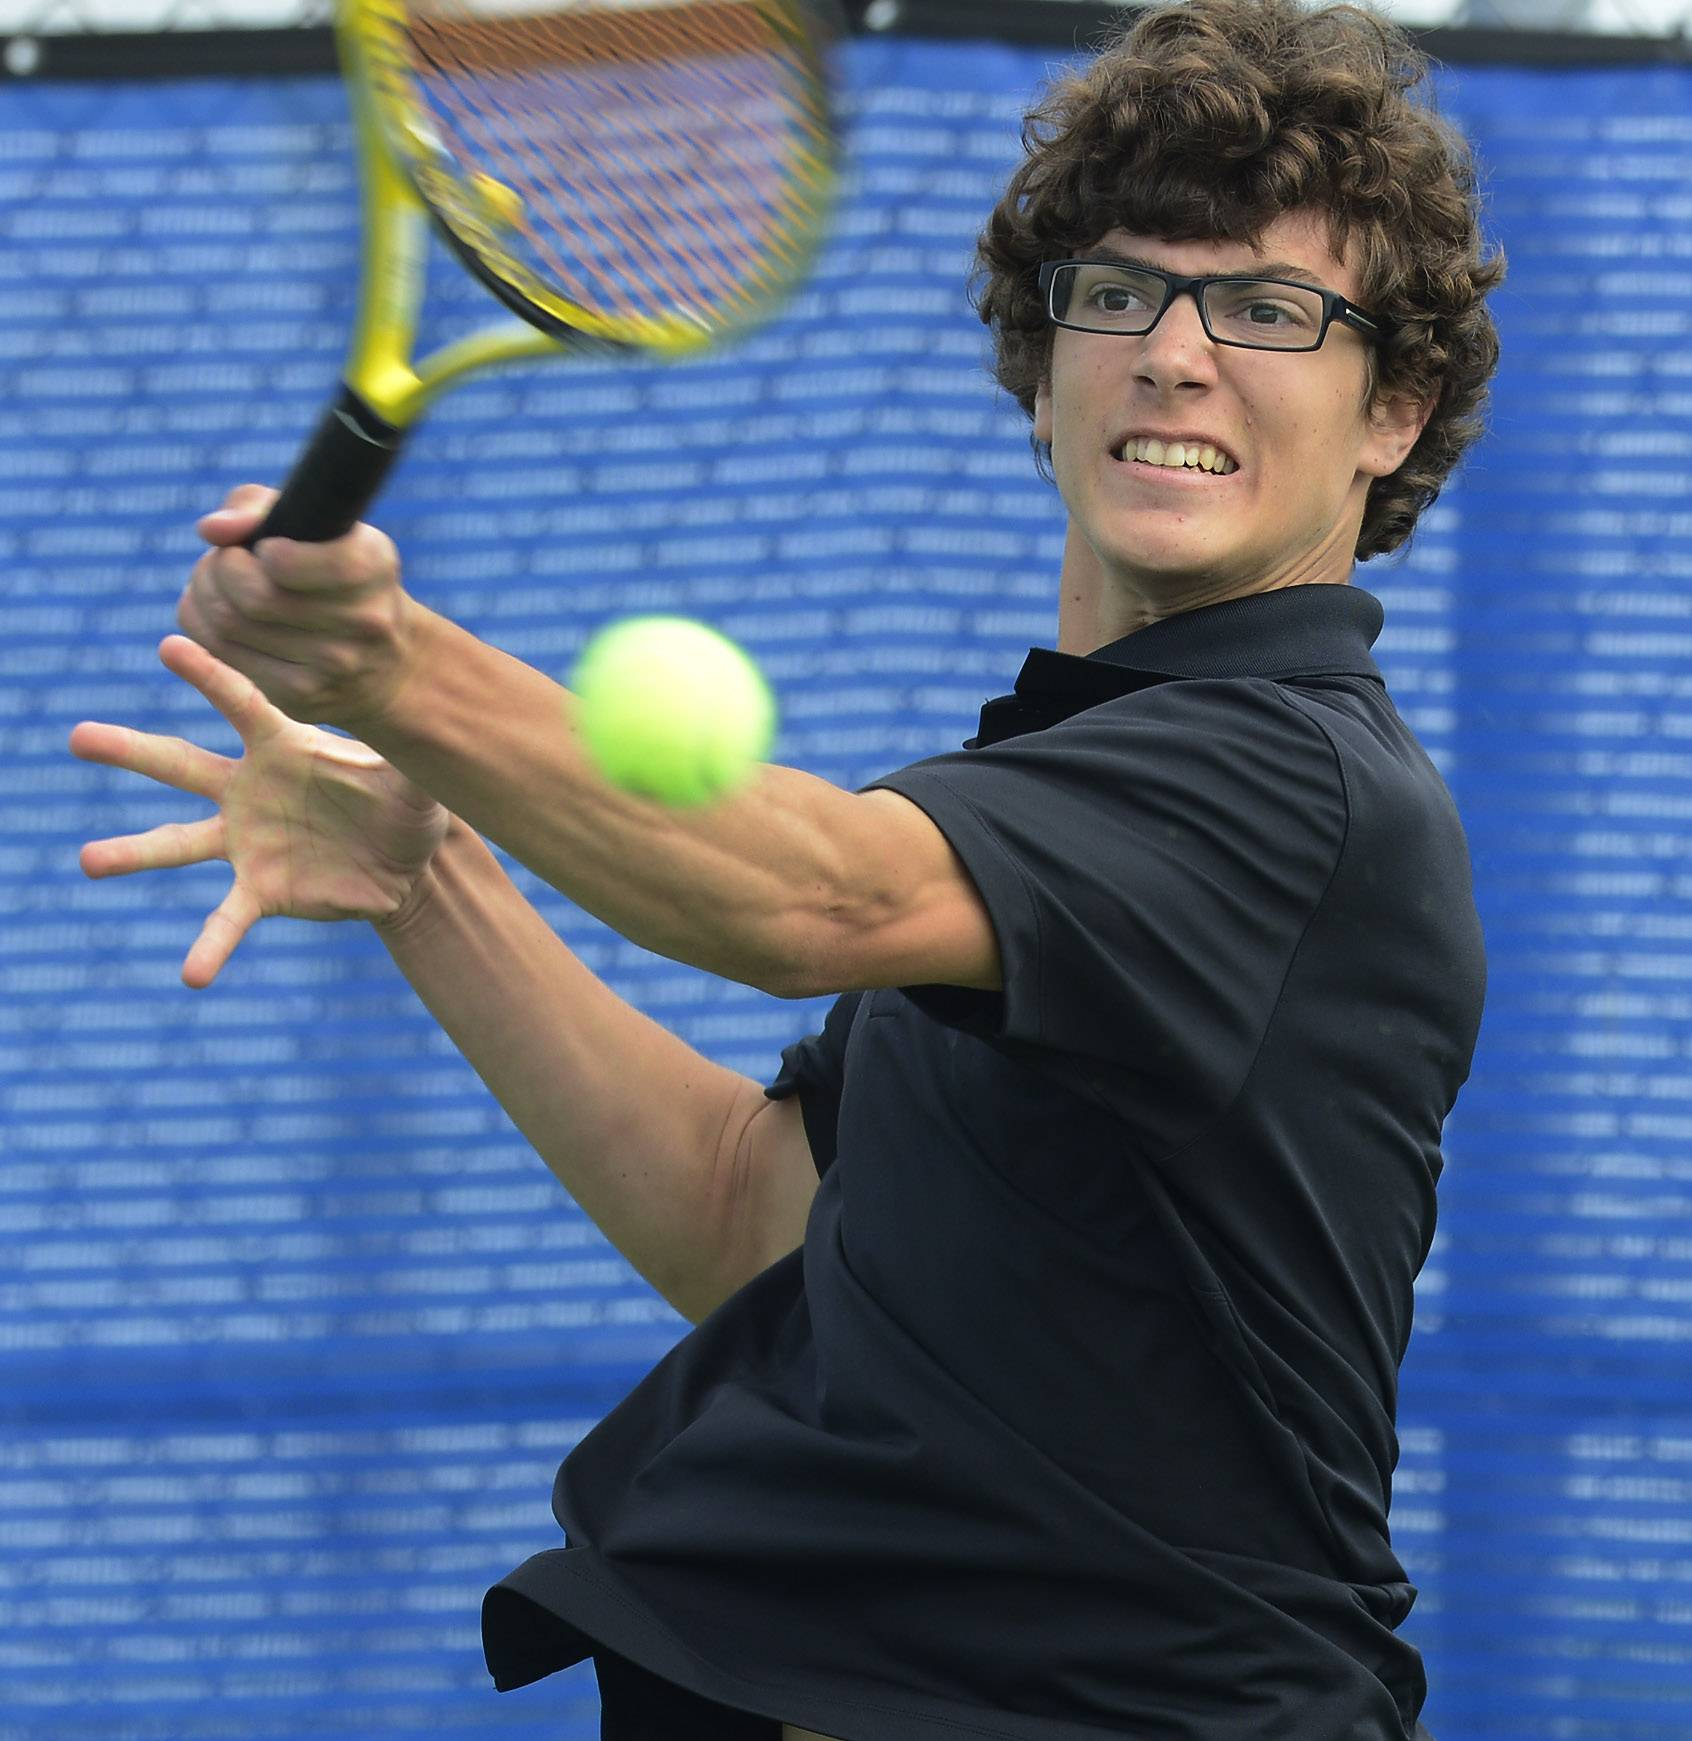 Elisha Hougland of Hampshire returns the ball during the state boys tennis meet at Hoffman Estates High School Thursday.